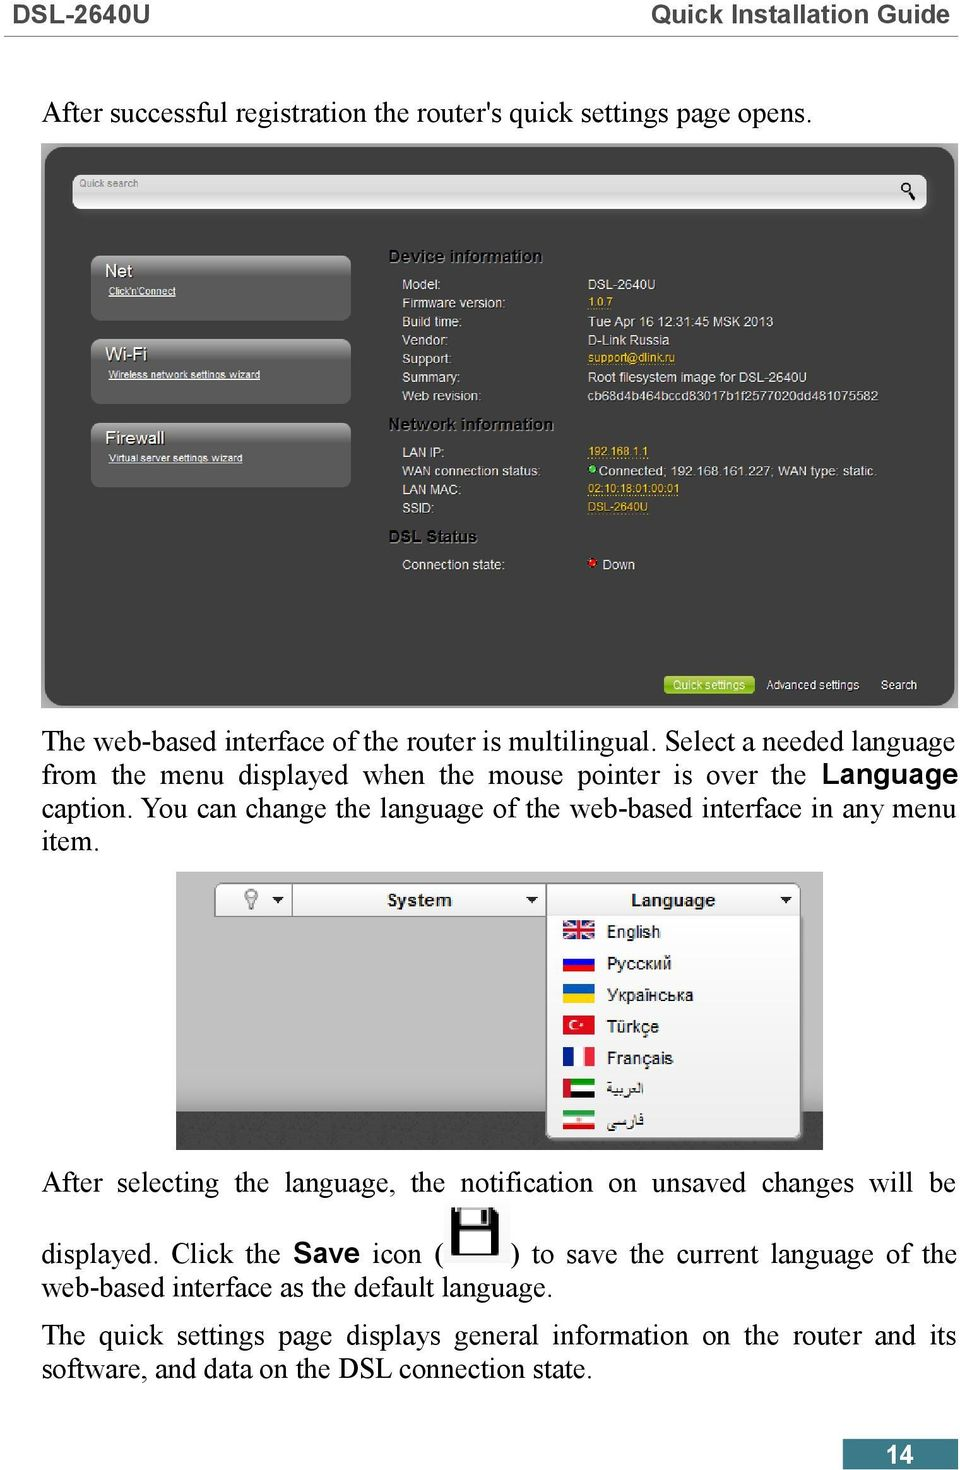 You can change the language of the web-based interface in any menu item.